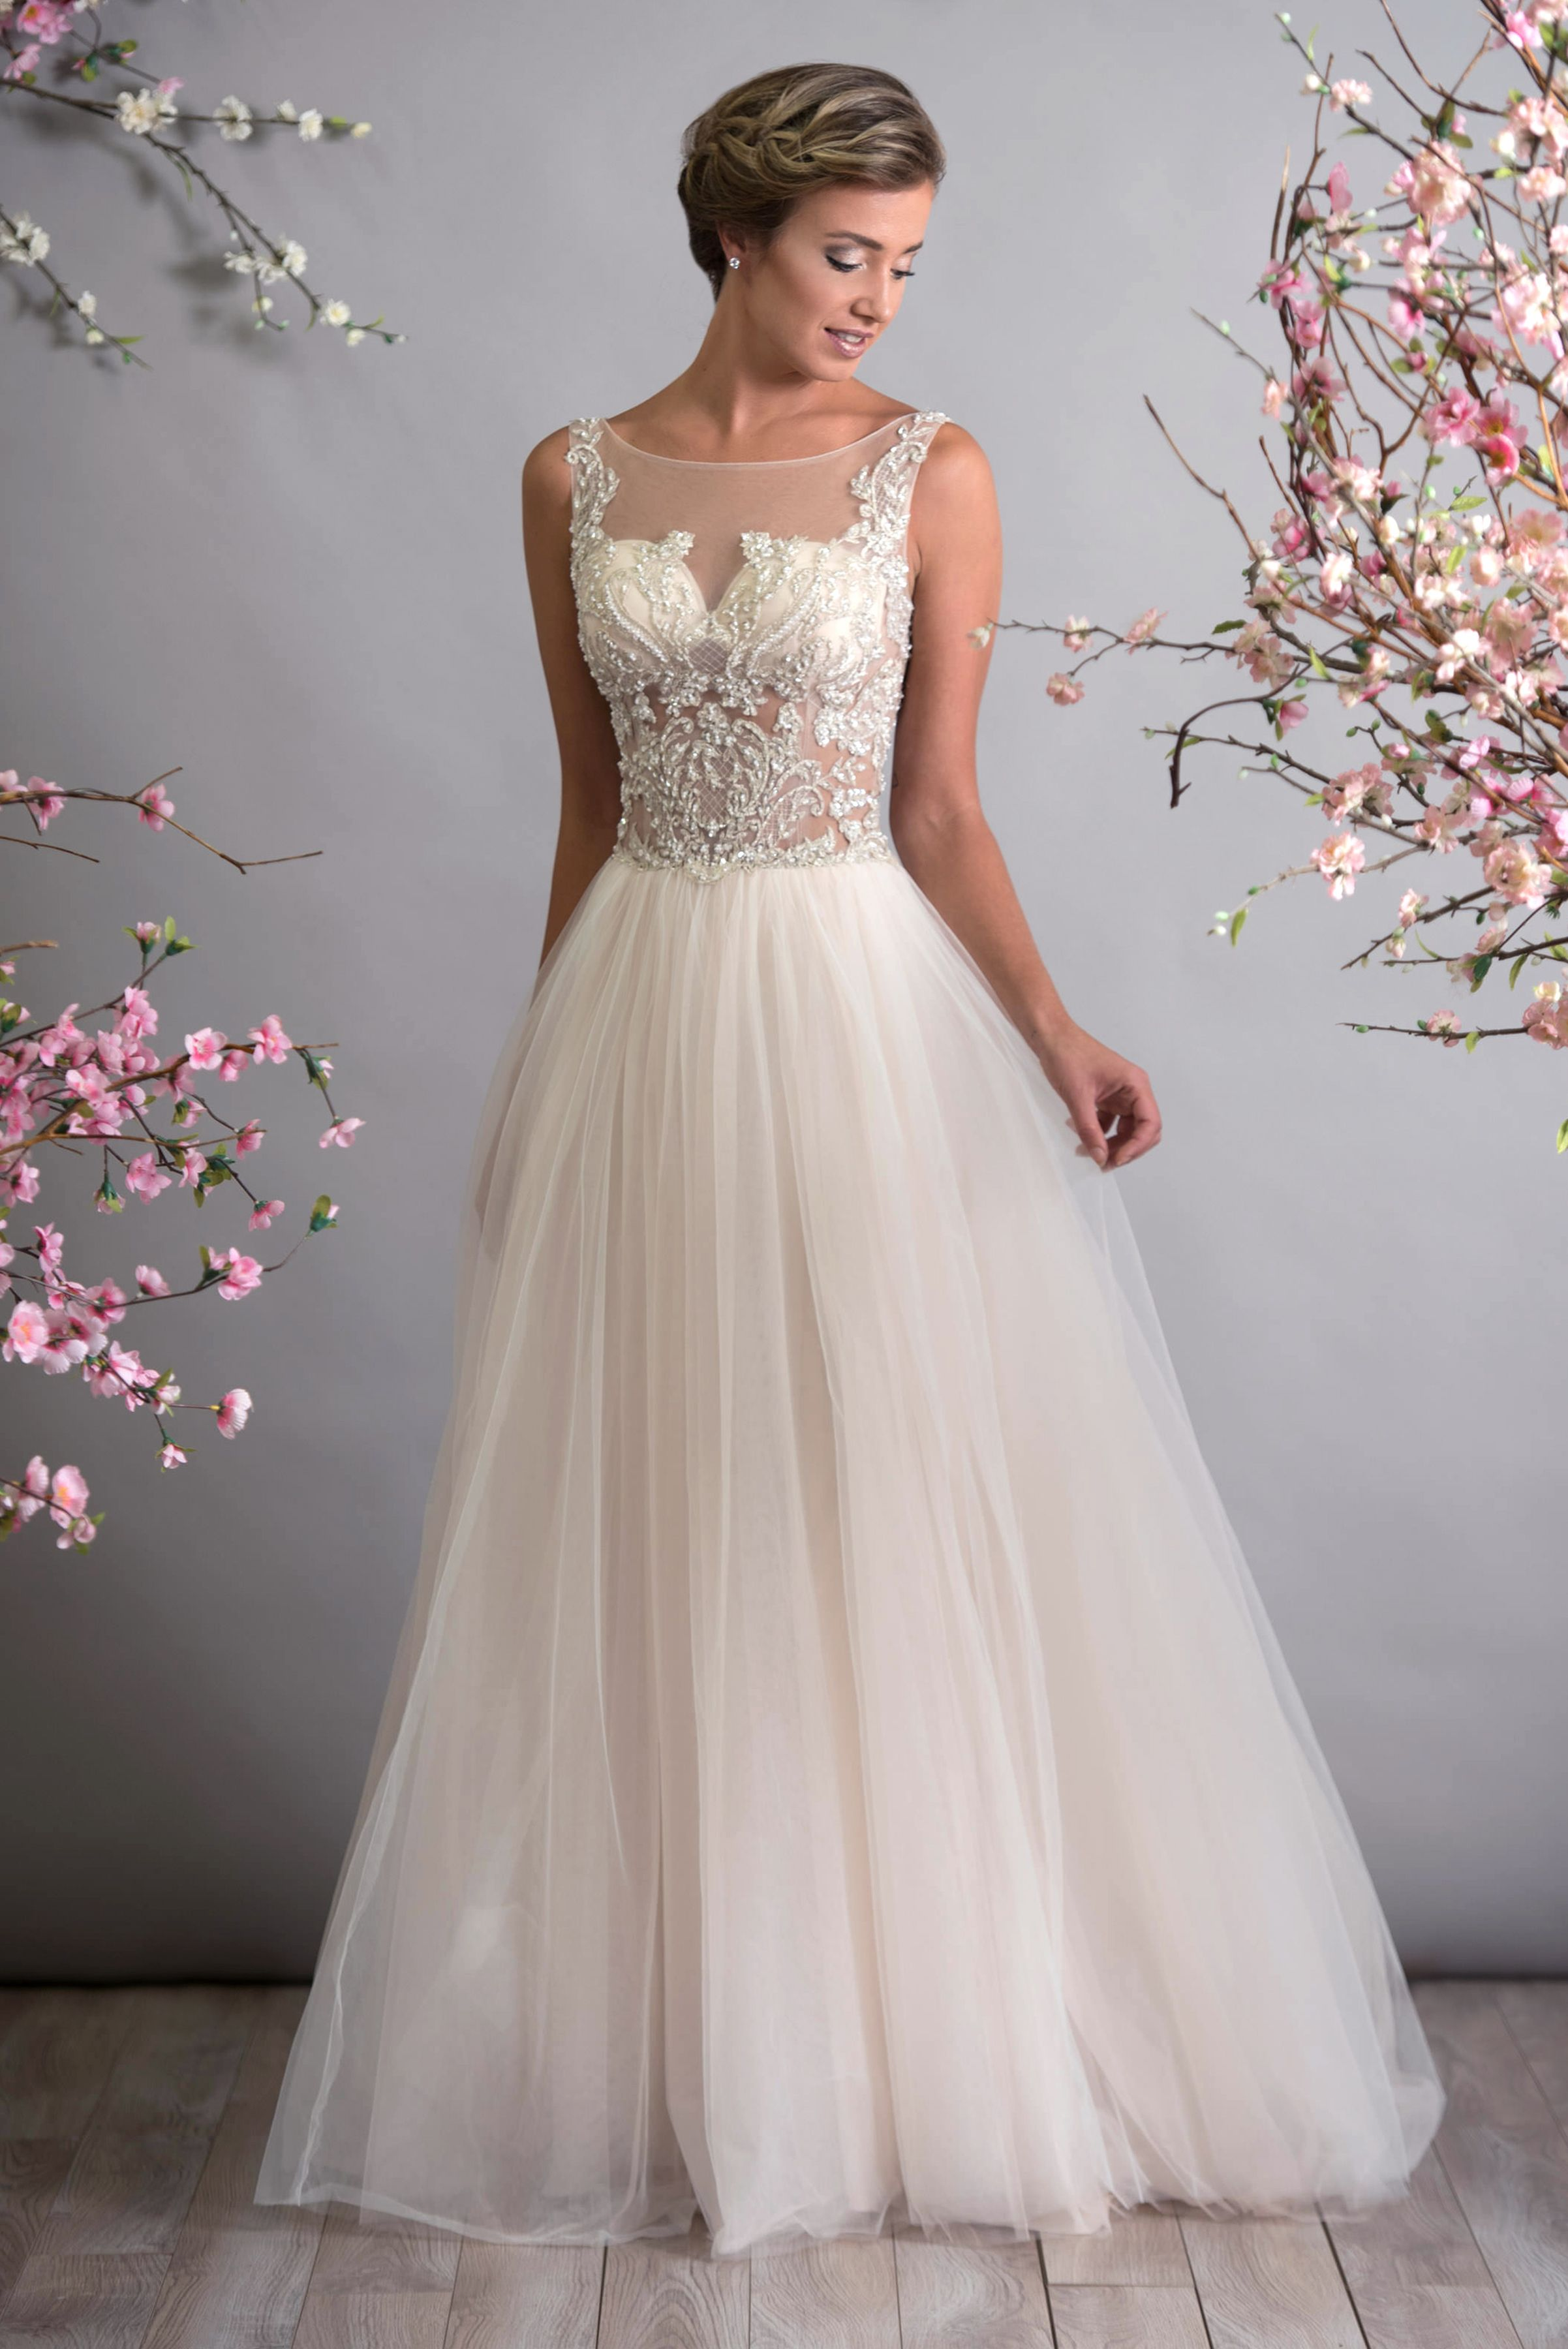 Gorgeous Illusion Bodice With Beaded Embroidery Available Sheer Or Fully Lined Sizes 00 30